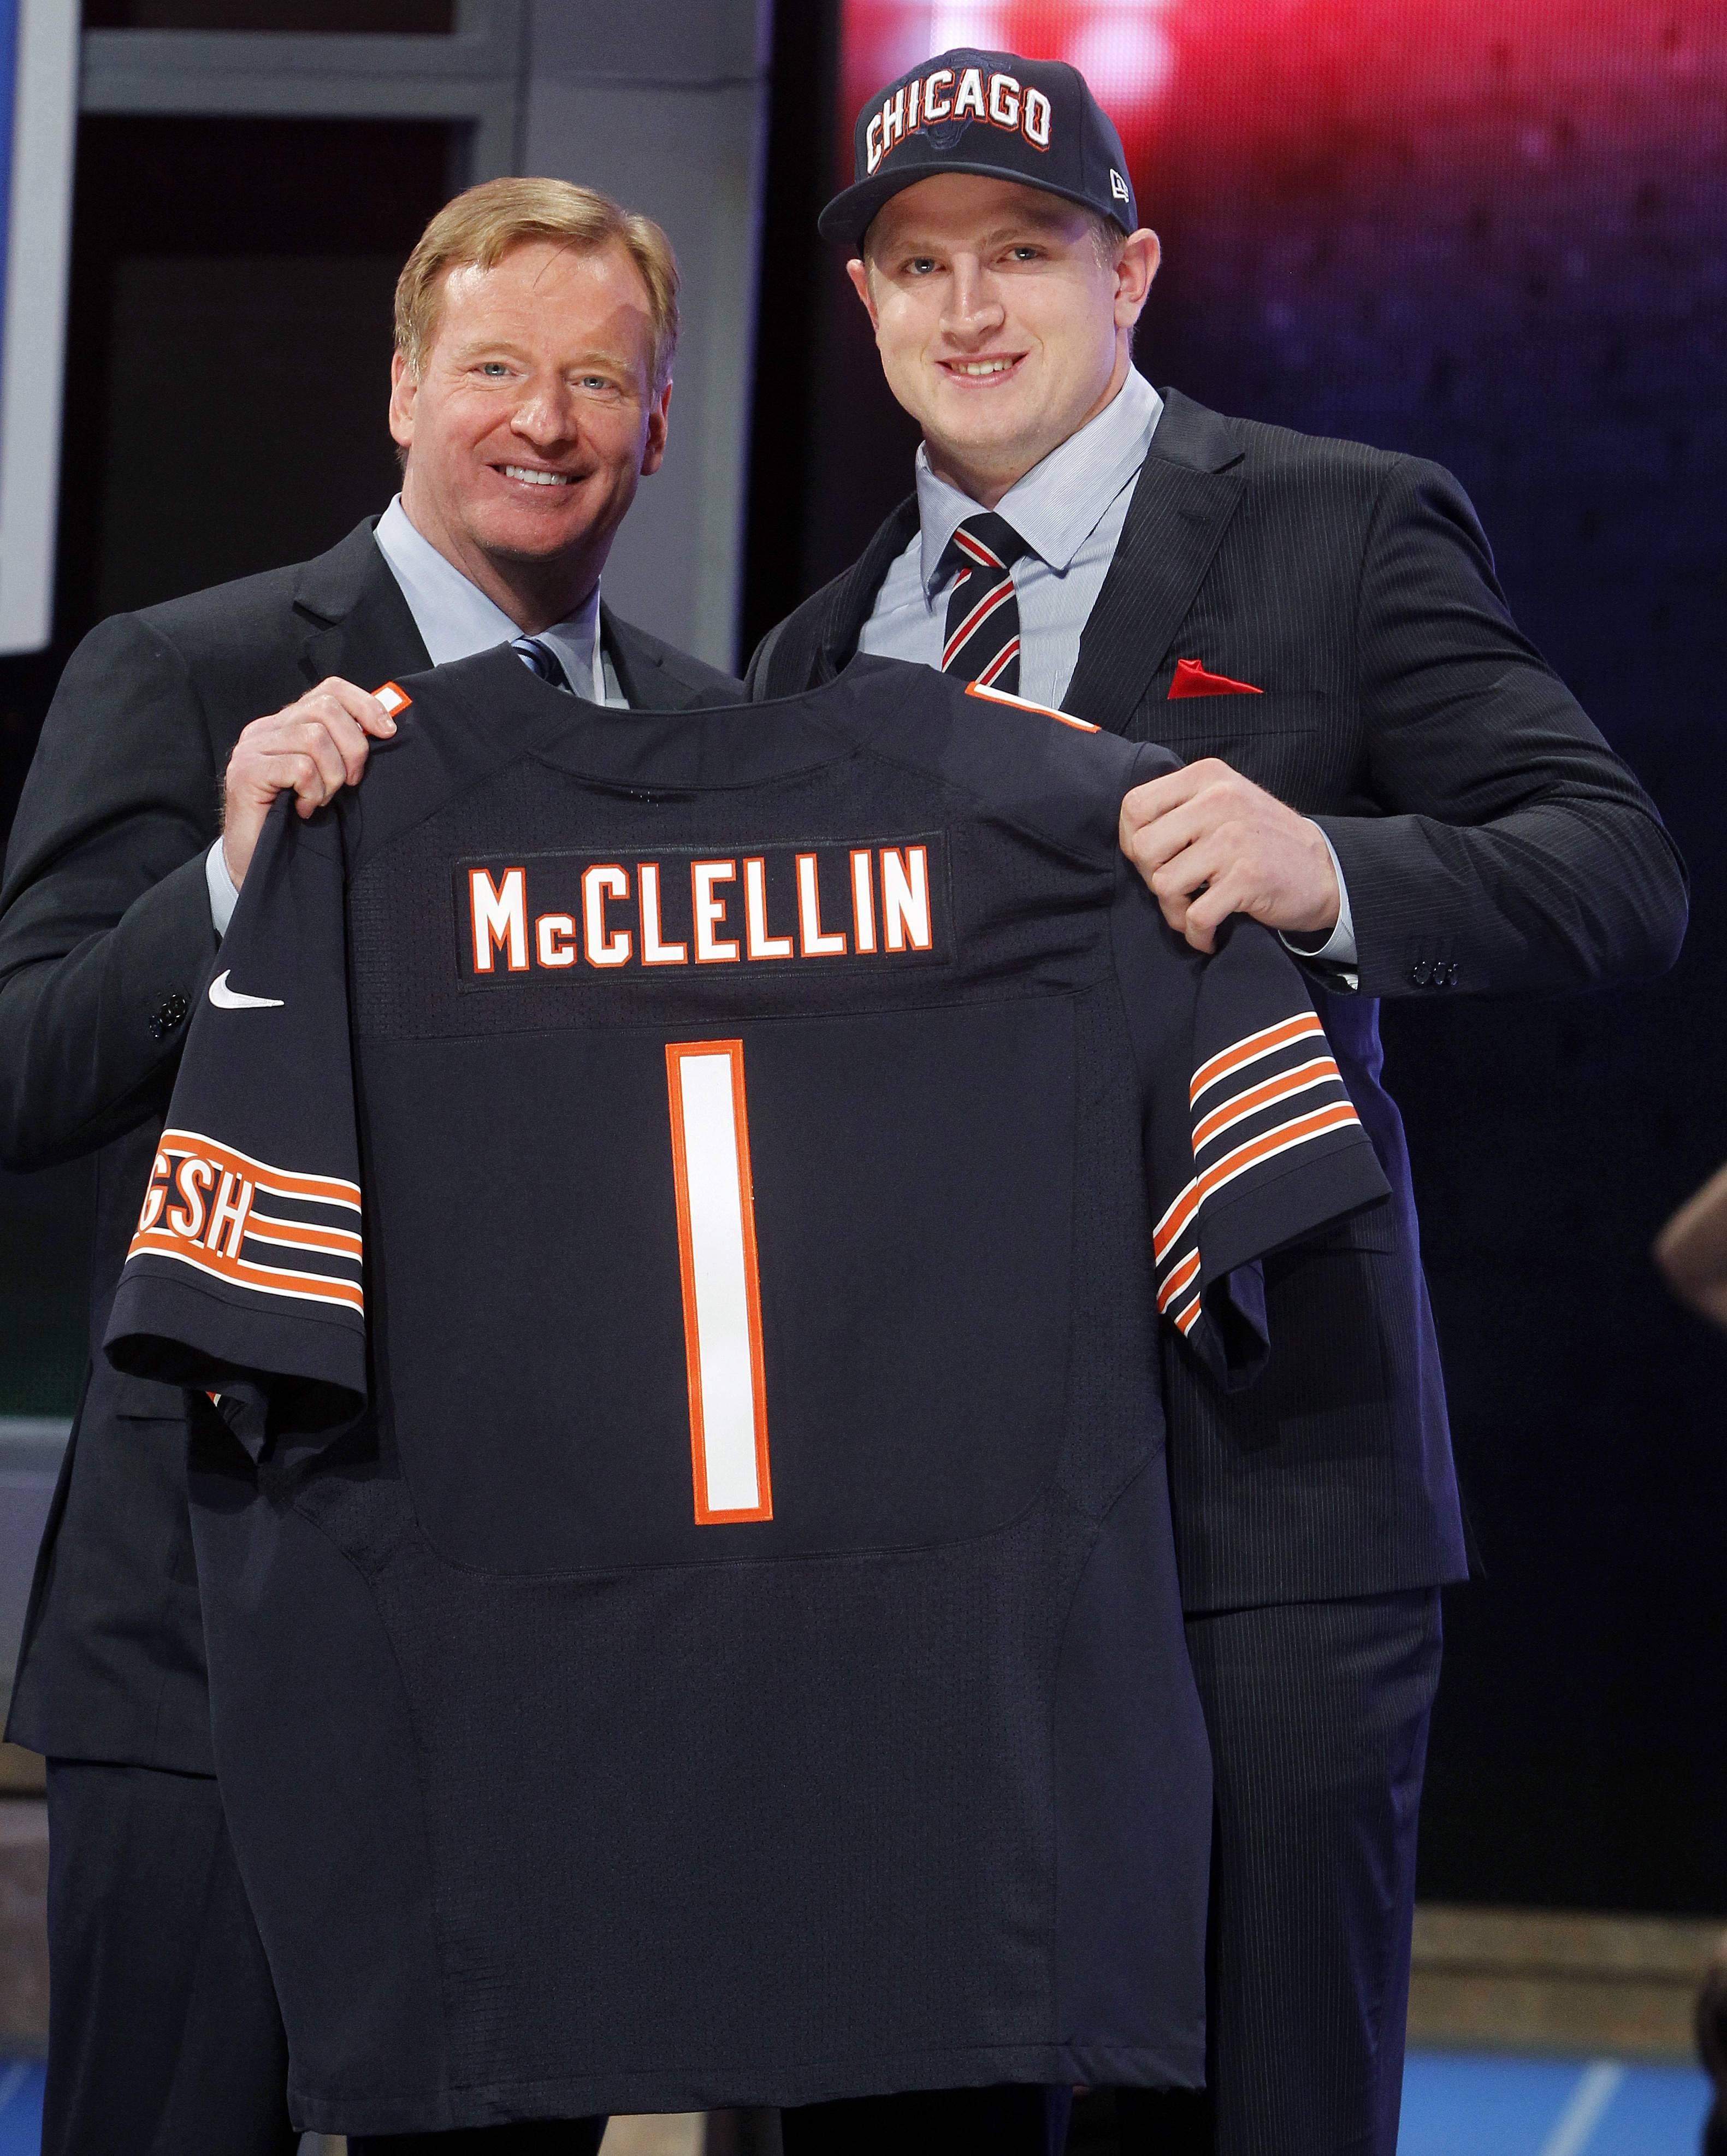 Boise State defensive end Shea McClellin, right, poses for photographs with NFL Commissioner Roger Goodell after being selected 19th overall by the Bears in the first round of the NFL football draft at Radio City Music Hall.